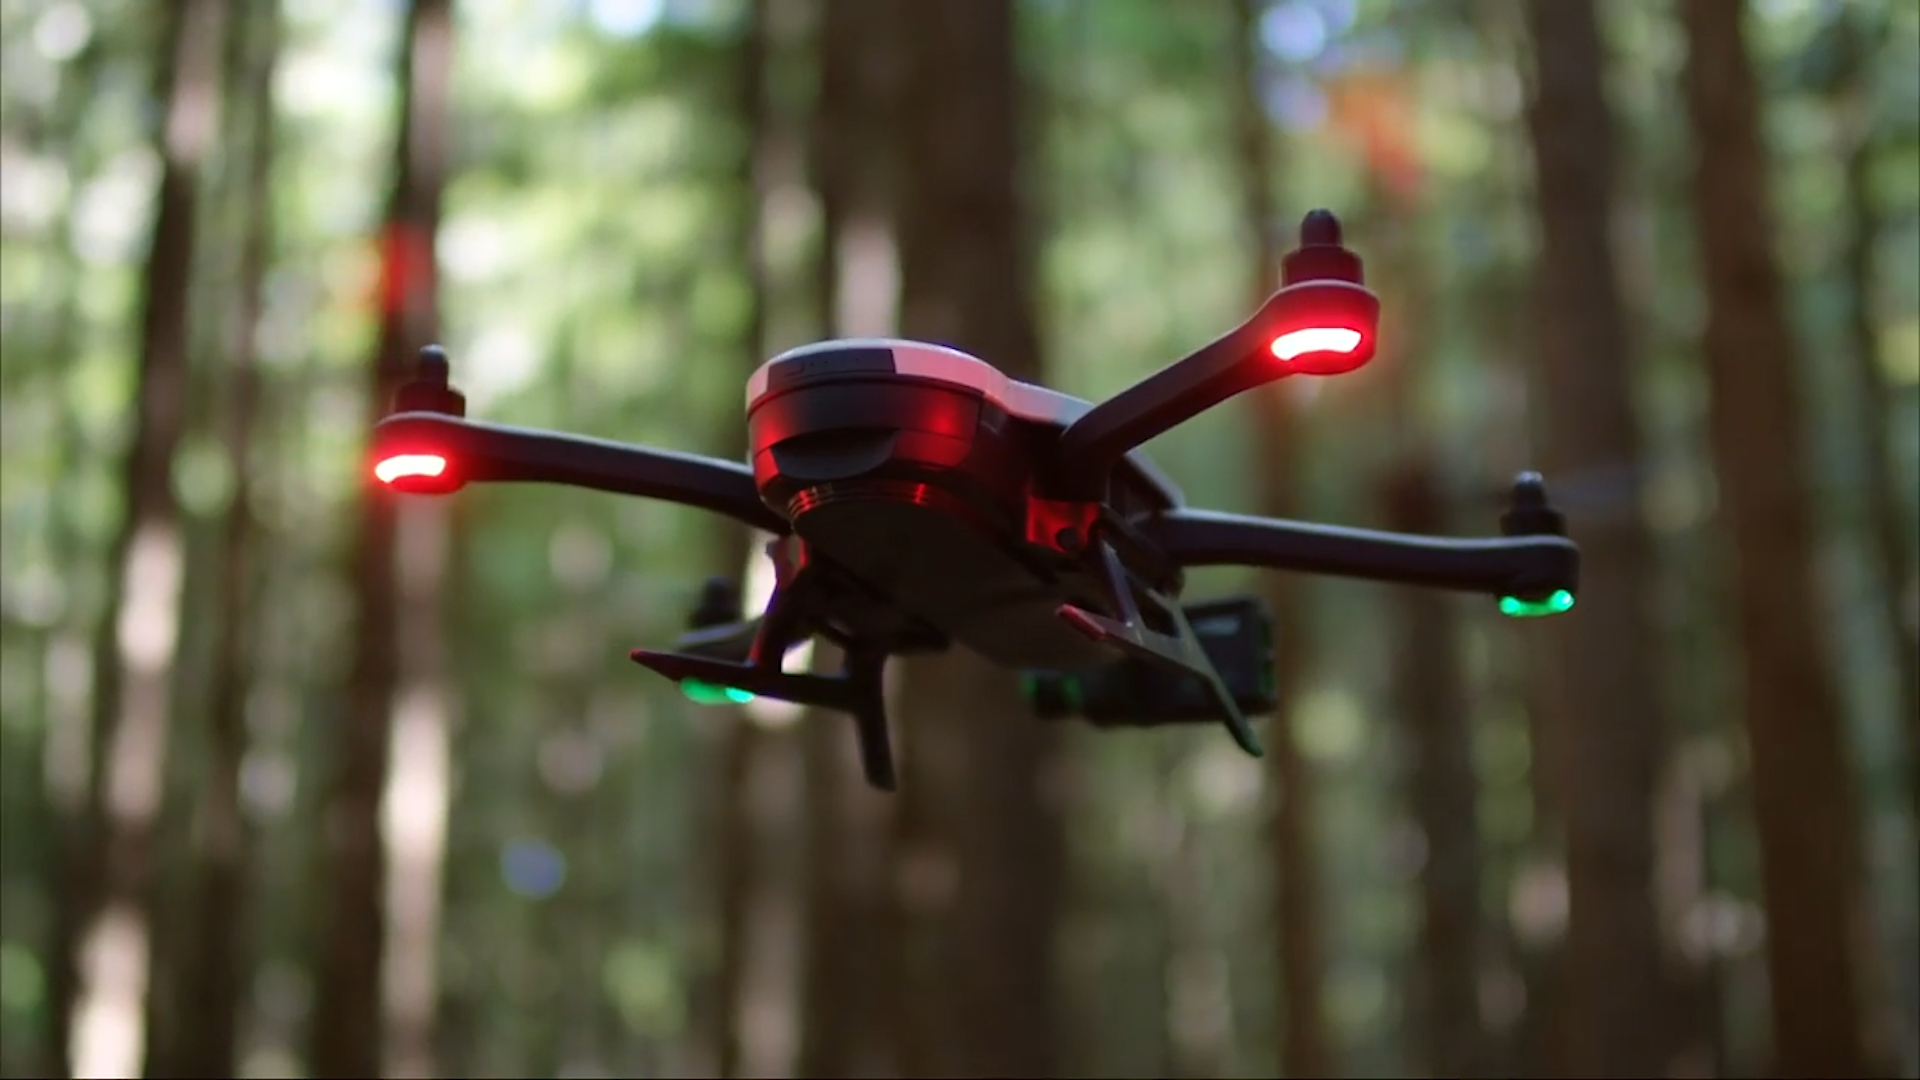 GoPro is looking to new products like drones to diversify, but investors are impatient.